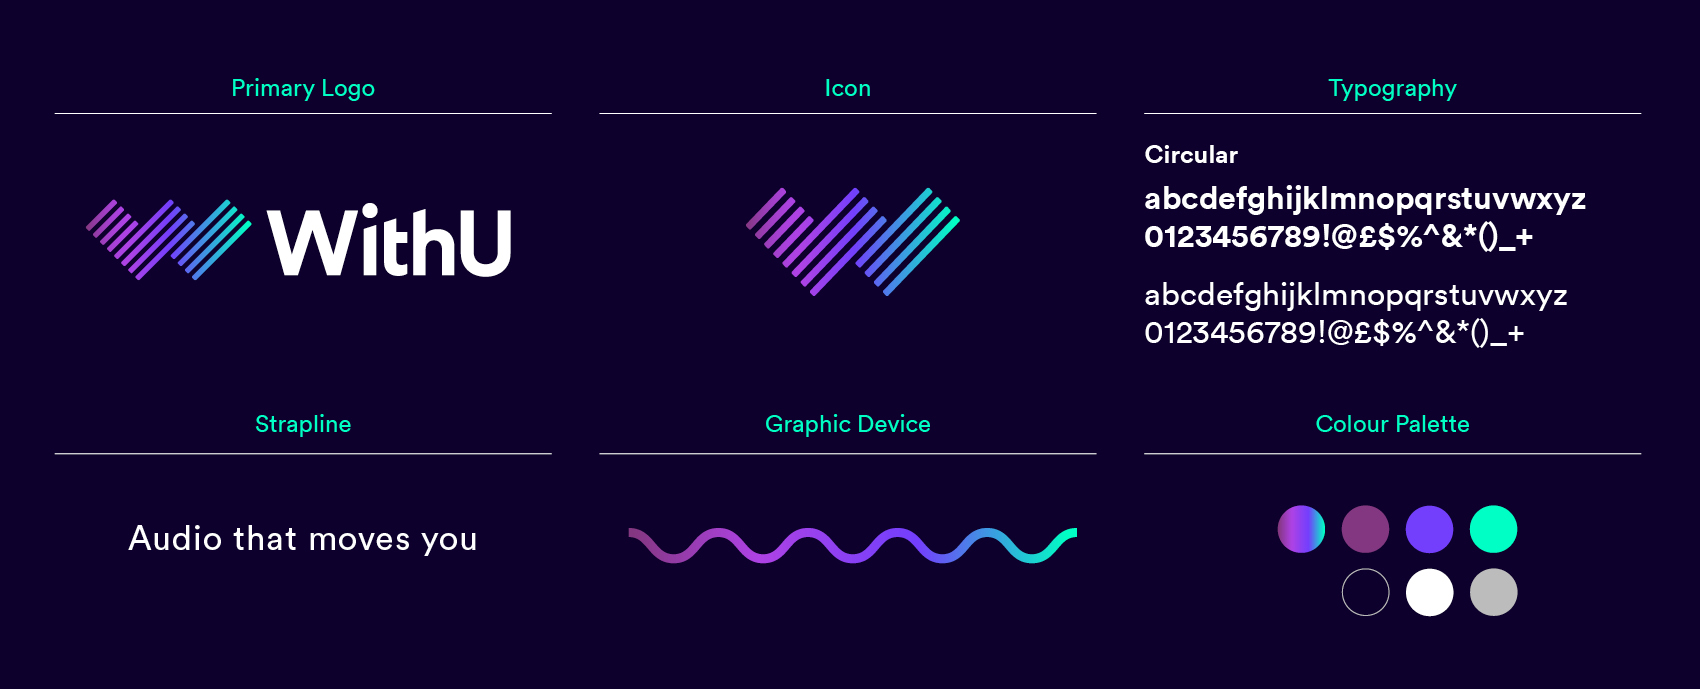 WithU Brand Guidelines Overview